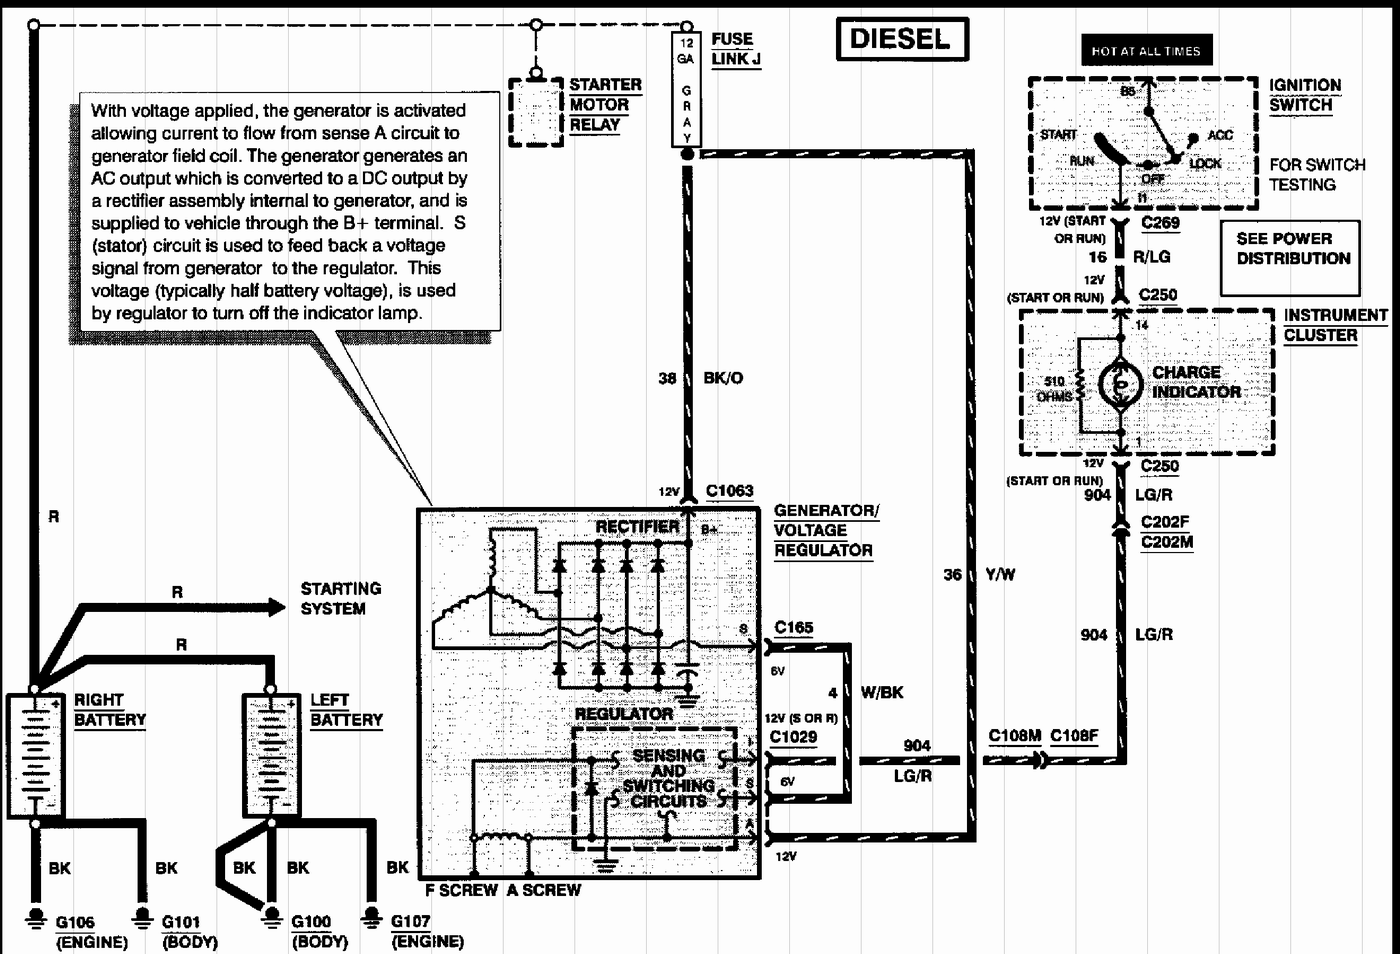 1997 F250 Diesel Transmission Diagram Wiring Libraries 1996 Ford F 250 7 3 Powerstroke Third Level96 F350 73 Data